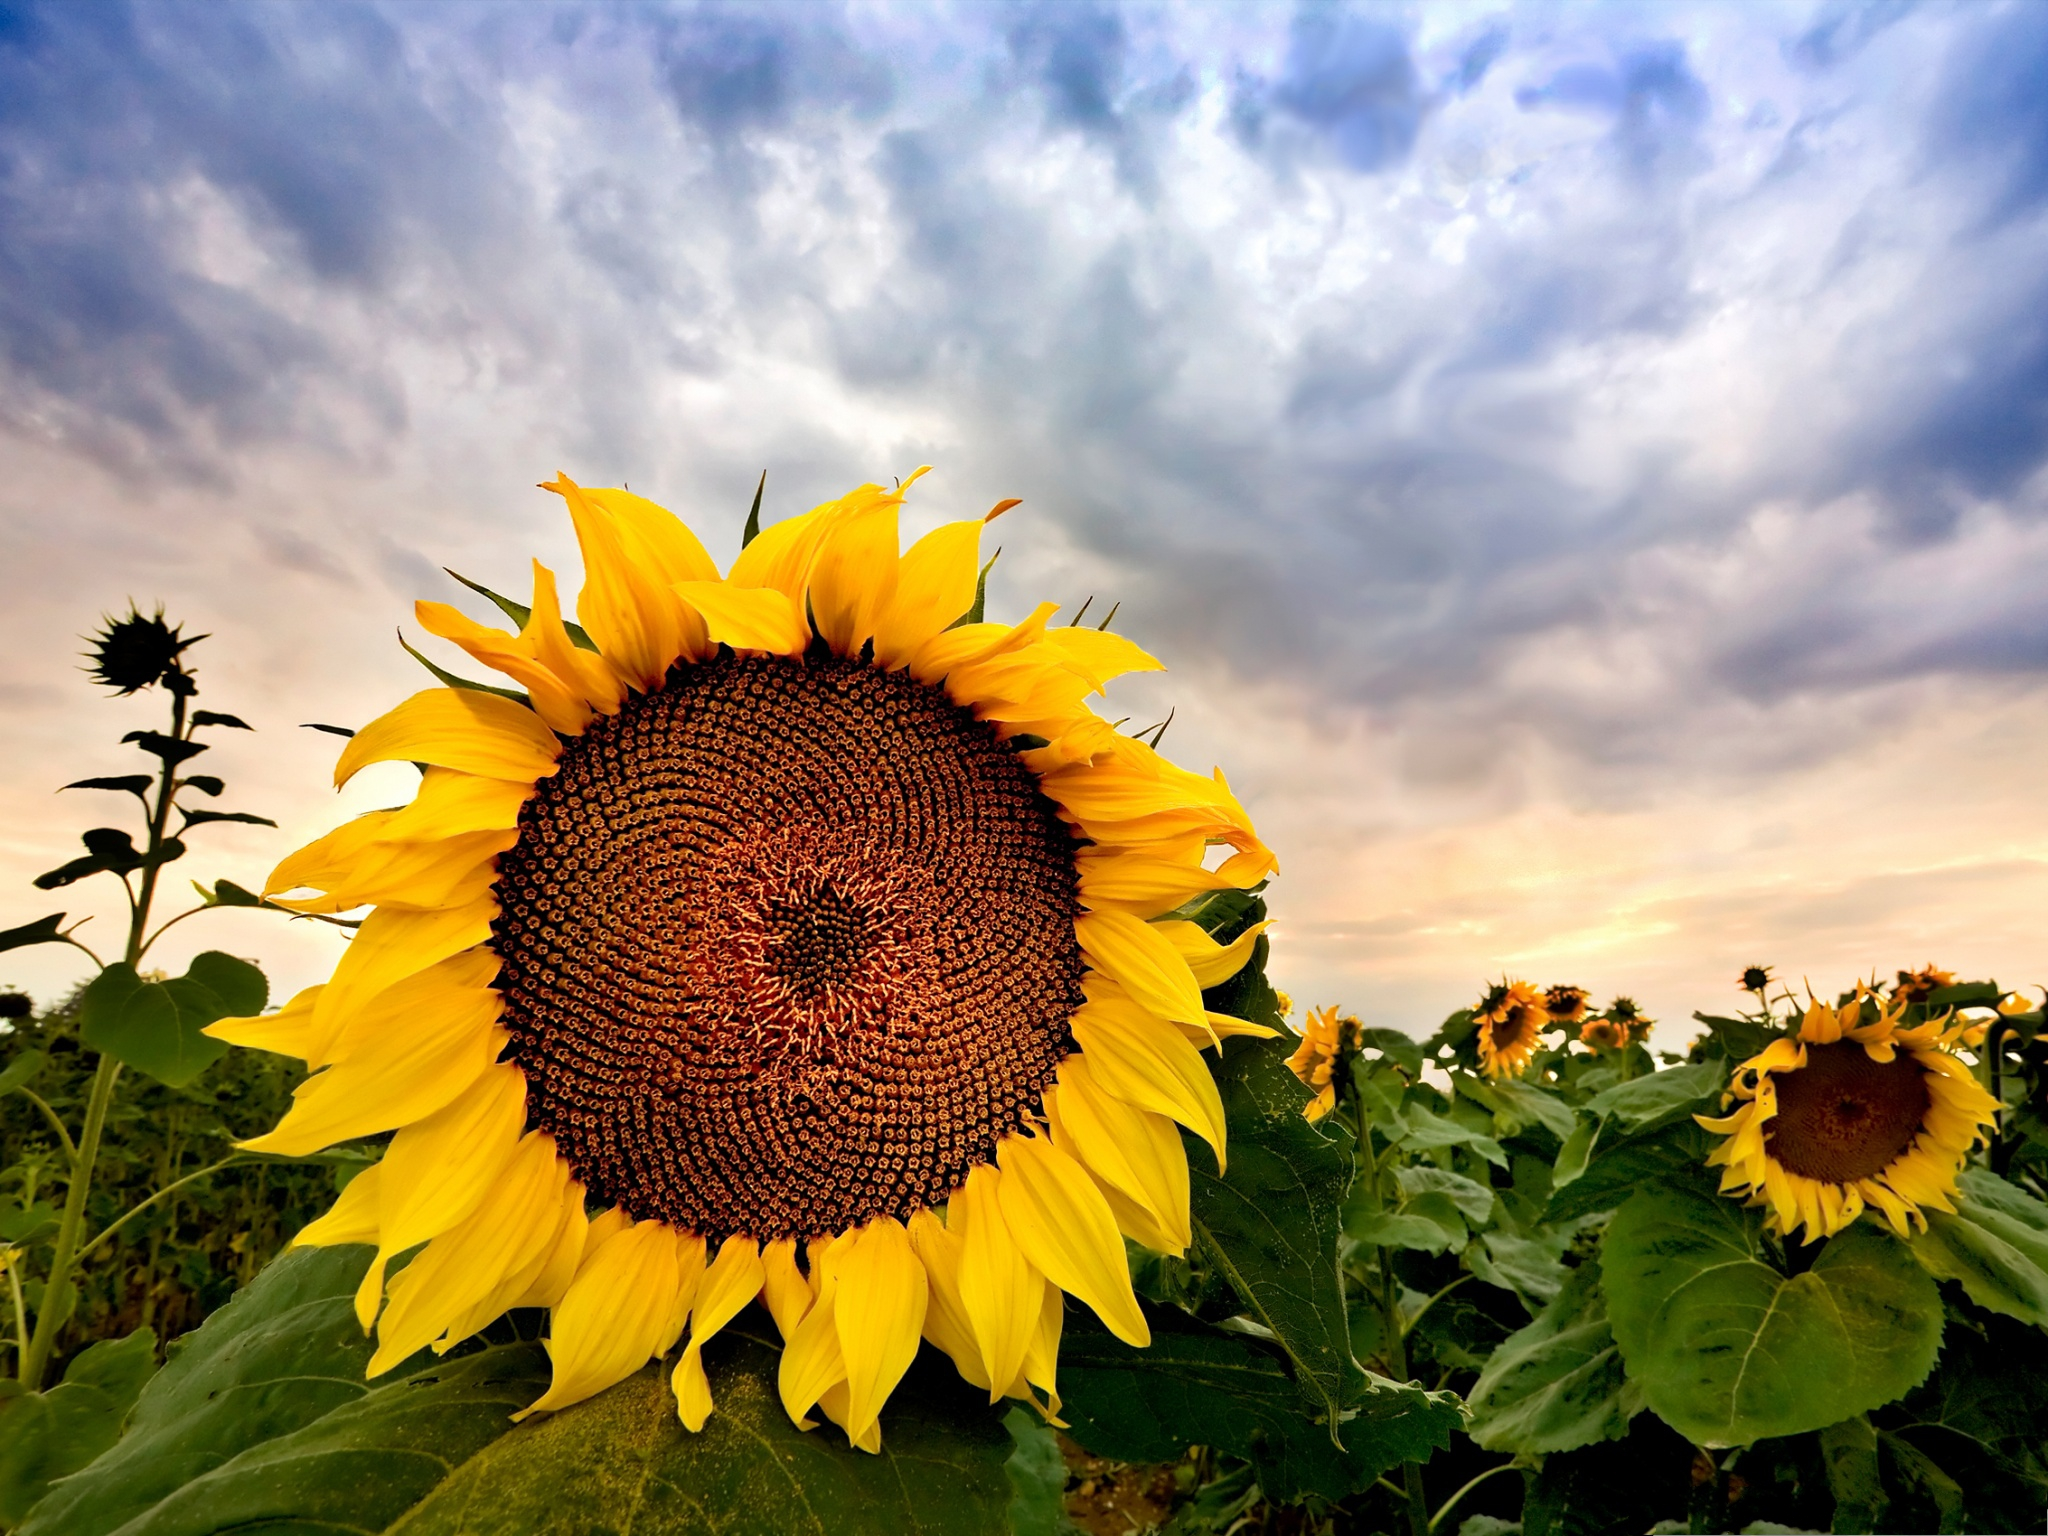 click to free download the wallpaper--Beautiful Sunflowers Picture, Blooming Flower and Ripe Seeds, Incredible Scene 2048X1536 free wallpaper download